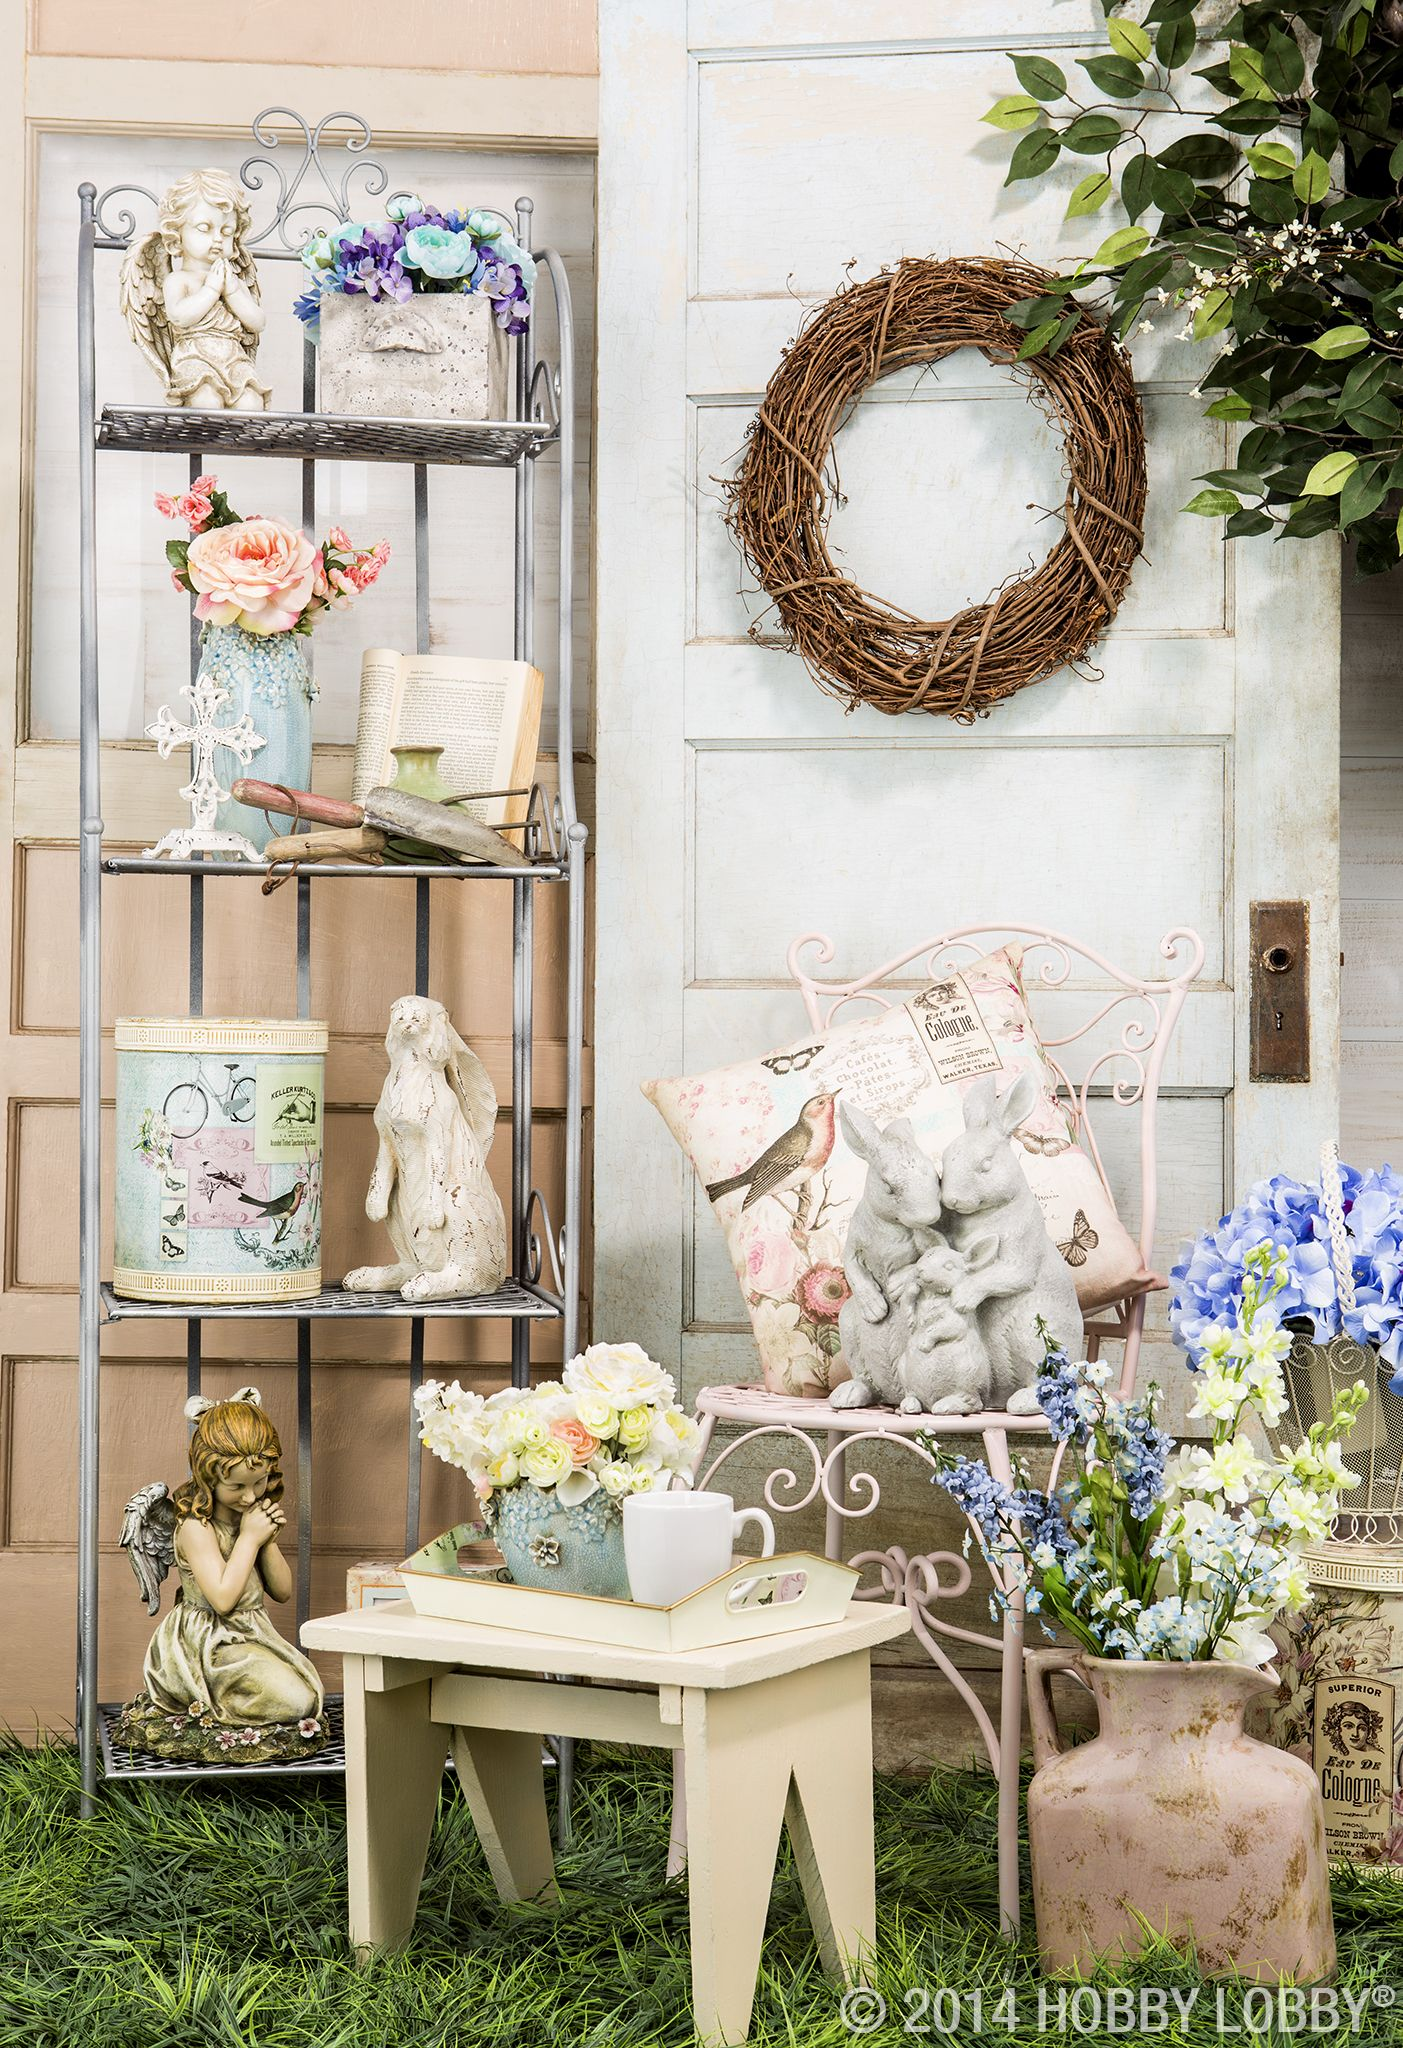 Another reason to love spring? Our Soft Spoken decor collection.